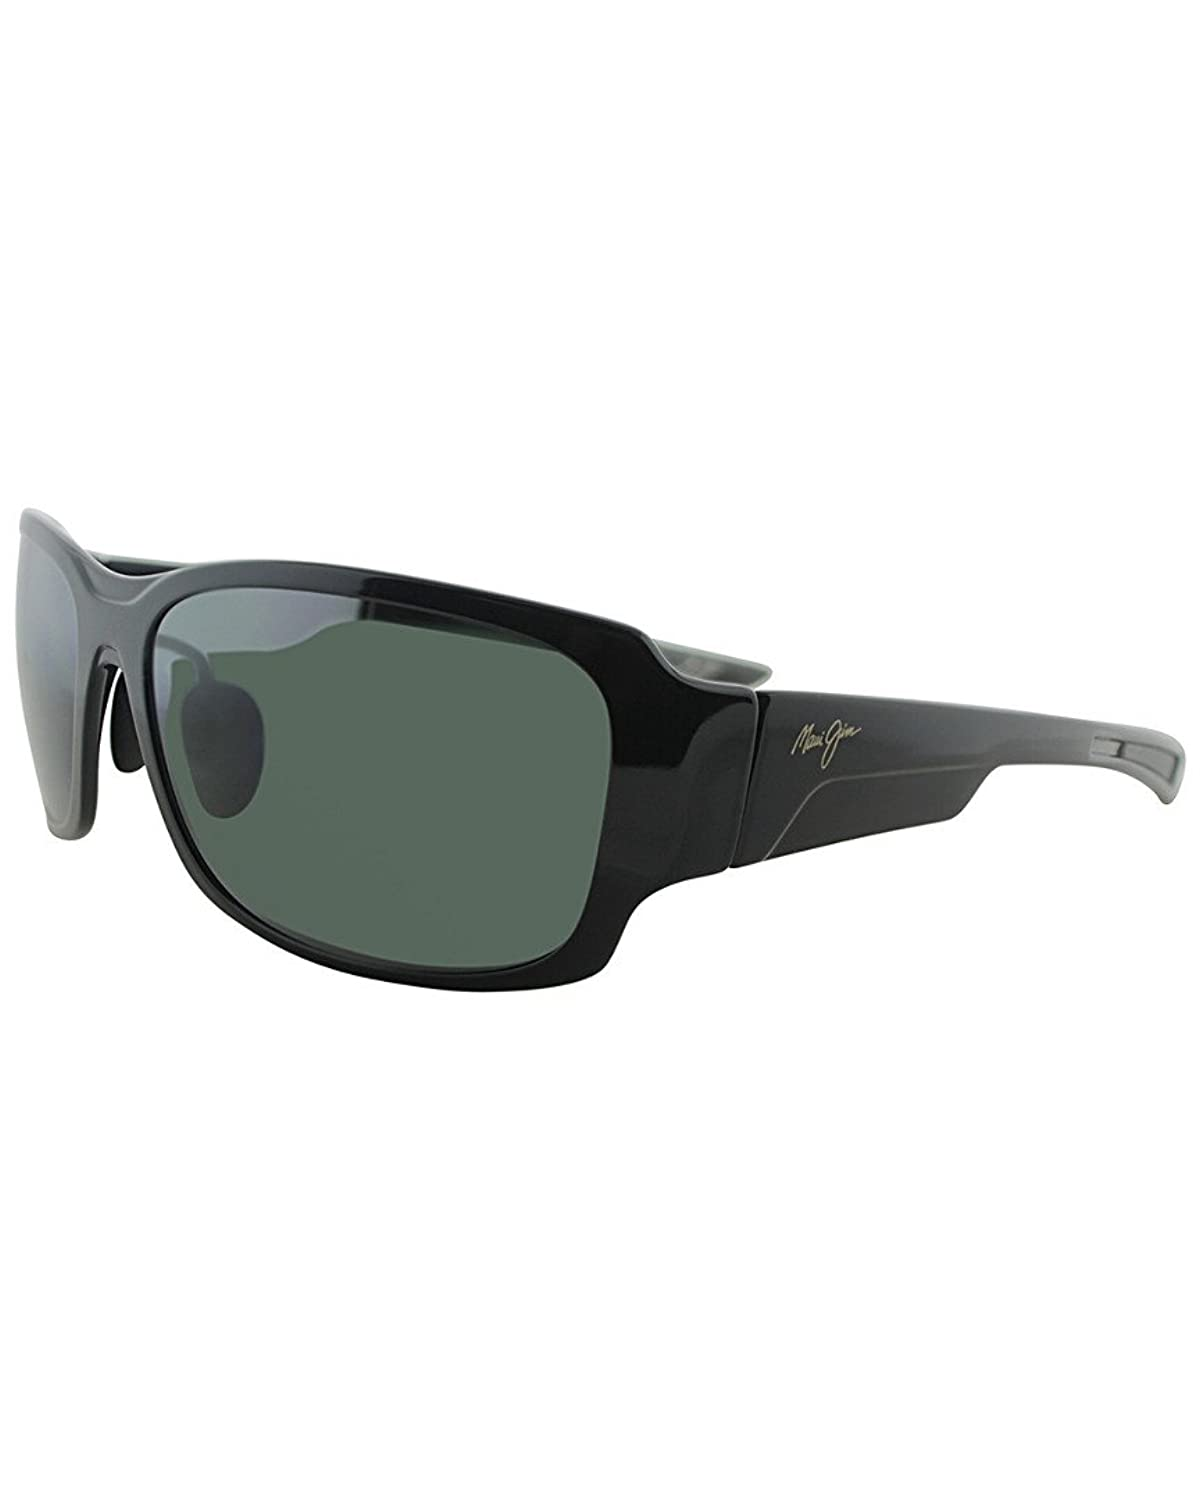 New Unisex Sunglasses Maui Jim Bamboo Forest Polarized 415-02J